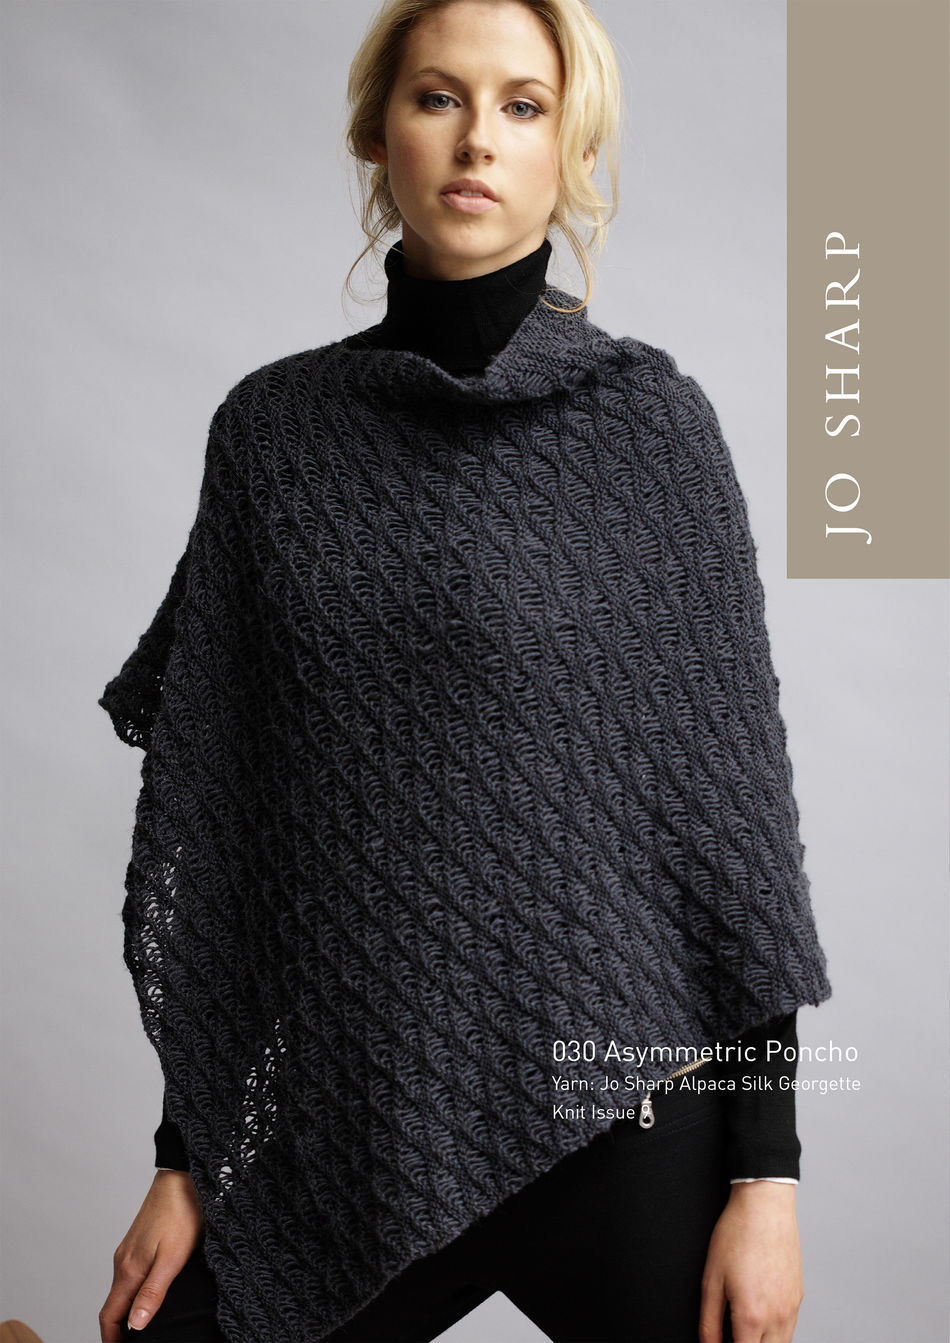 Jo Sharp Asymmetric Poncho Pattern Knitting Pattern Halcyon Yarn